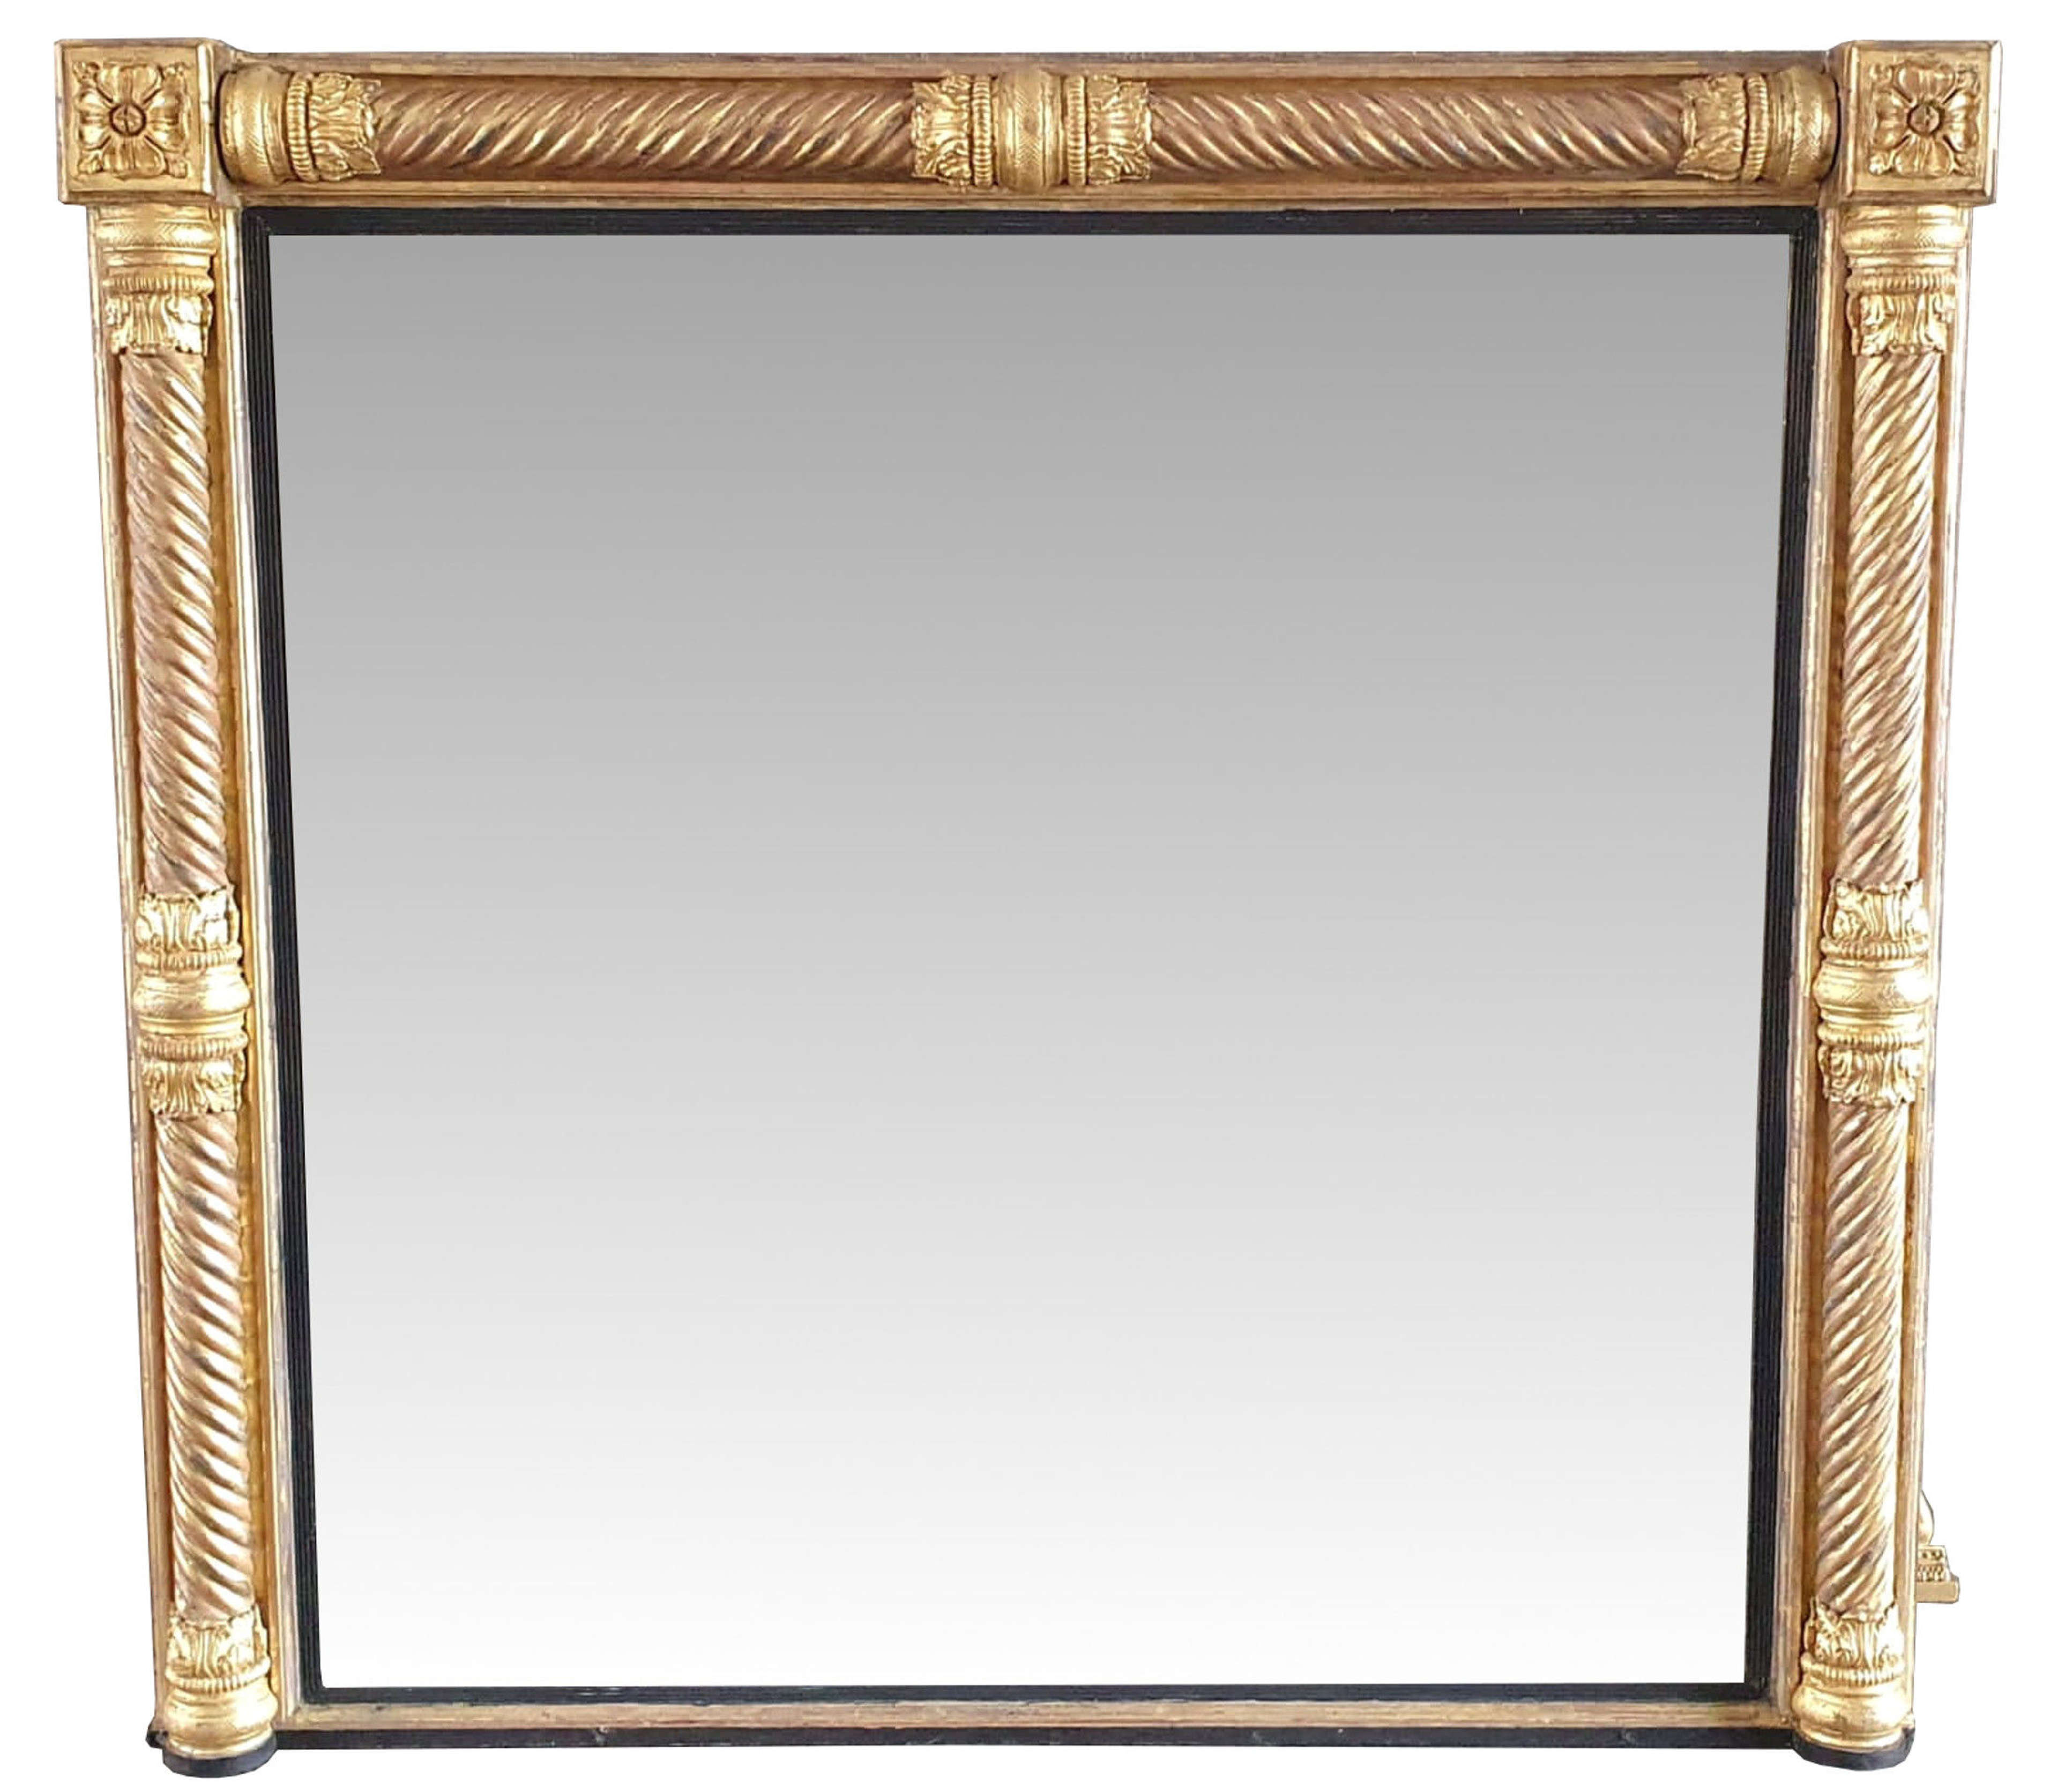 Early 19th Century Near Square Overmantle Mirror